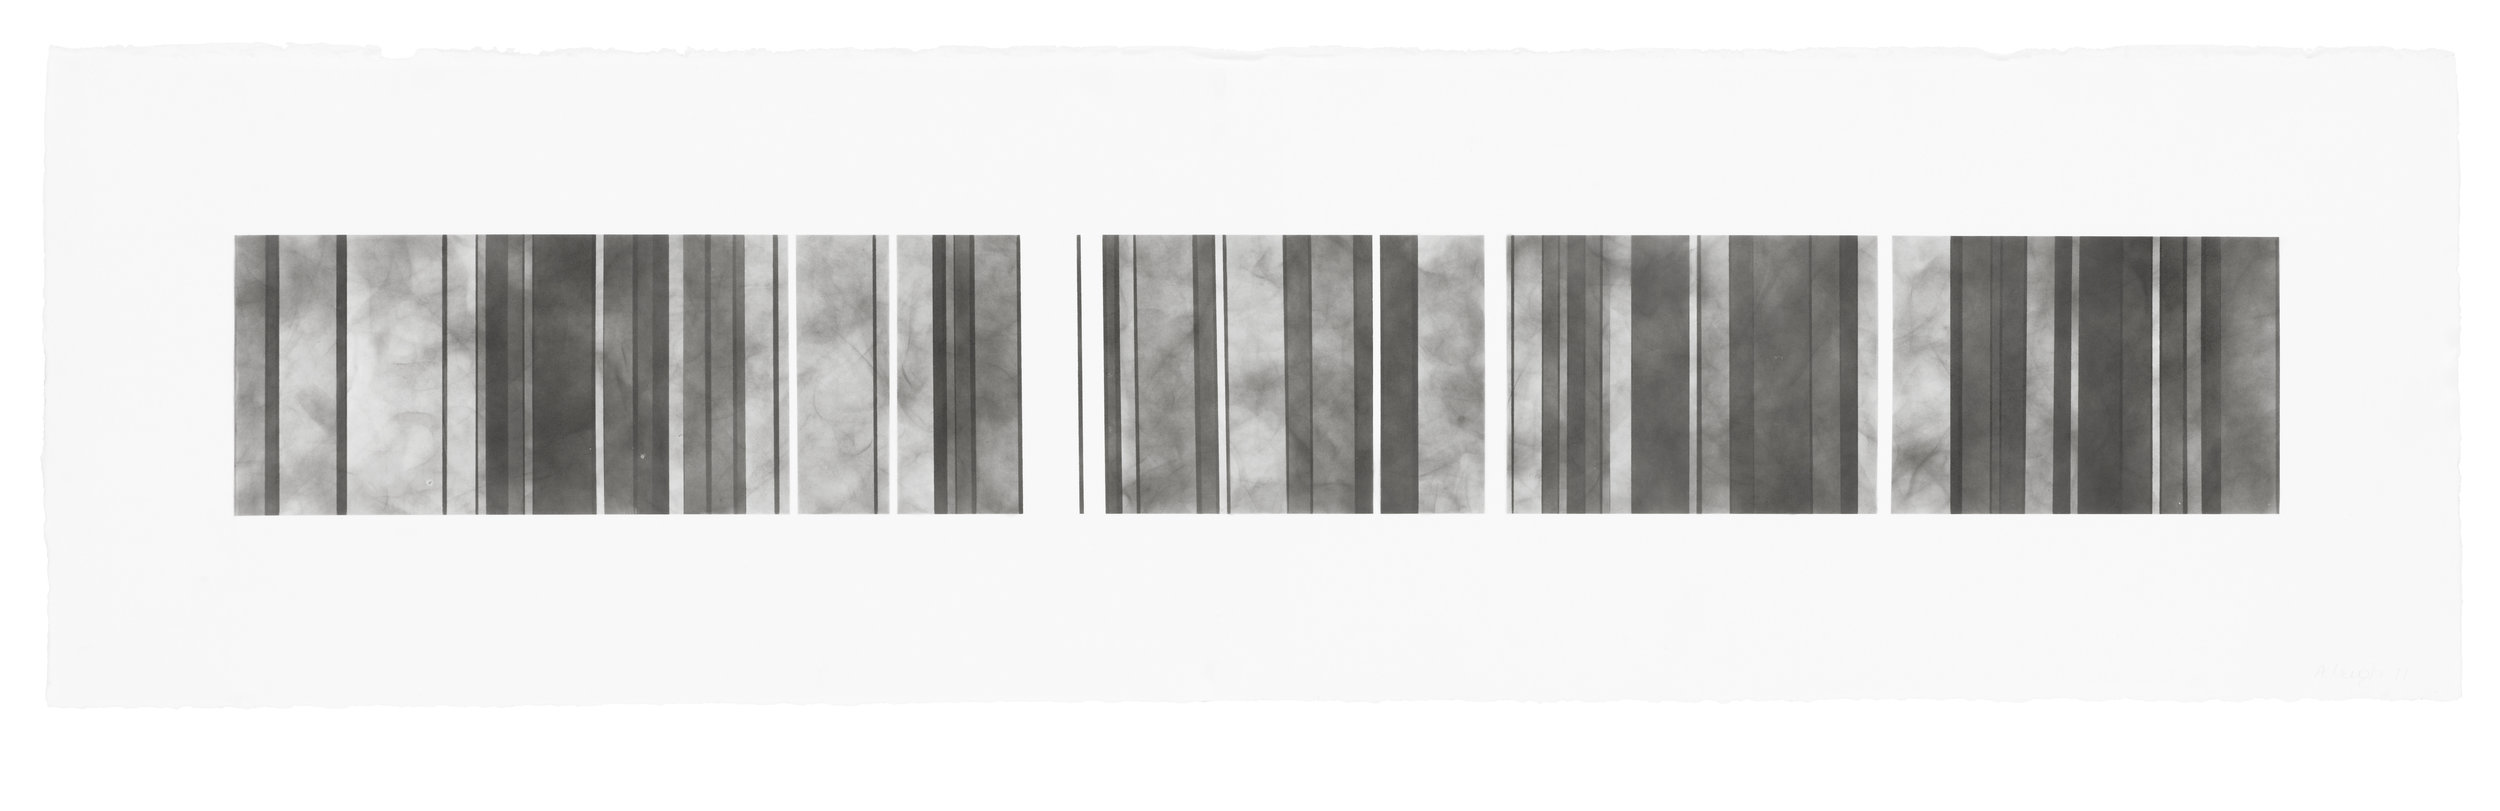 Barcode Series B 12, smoke on  paper, 11 by 40.5 inches, 2012